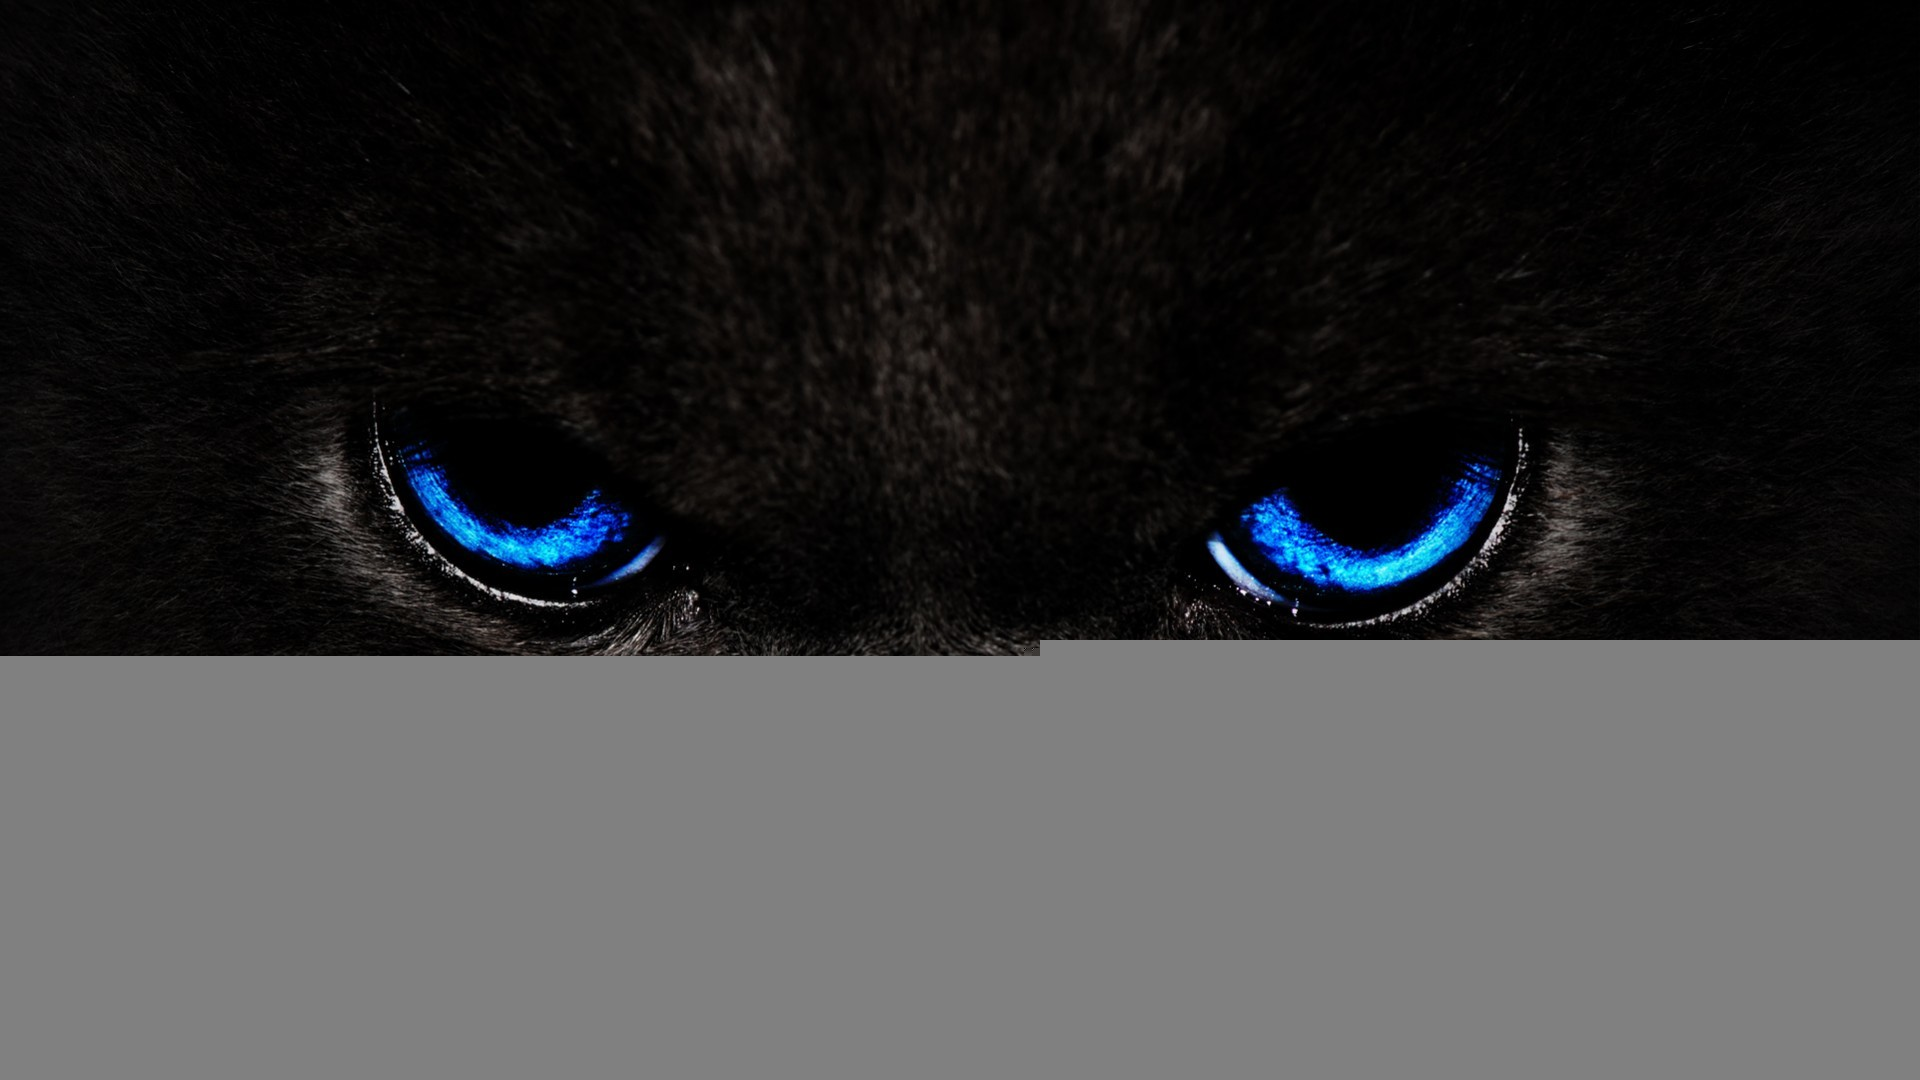 Black Panther Blue Eyes Posted By Ryan Thompson